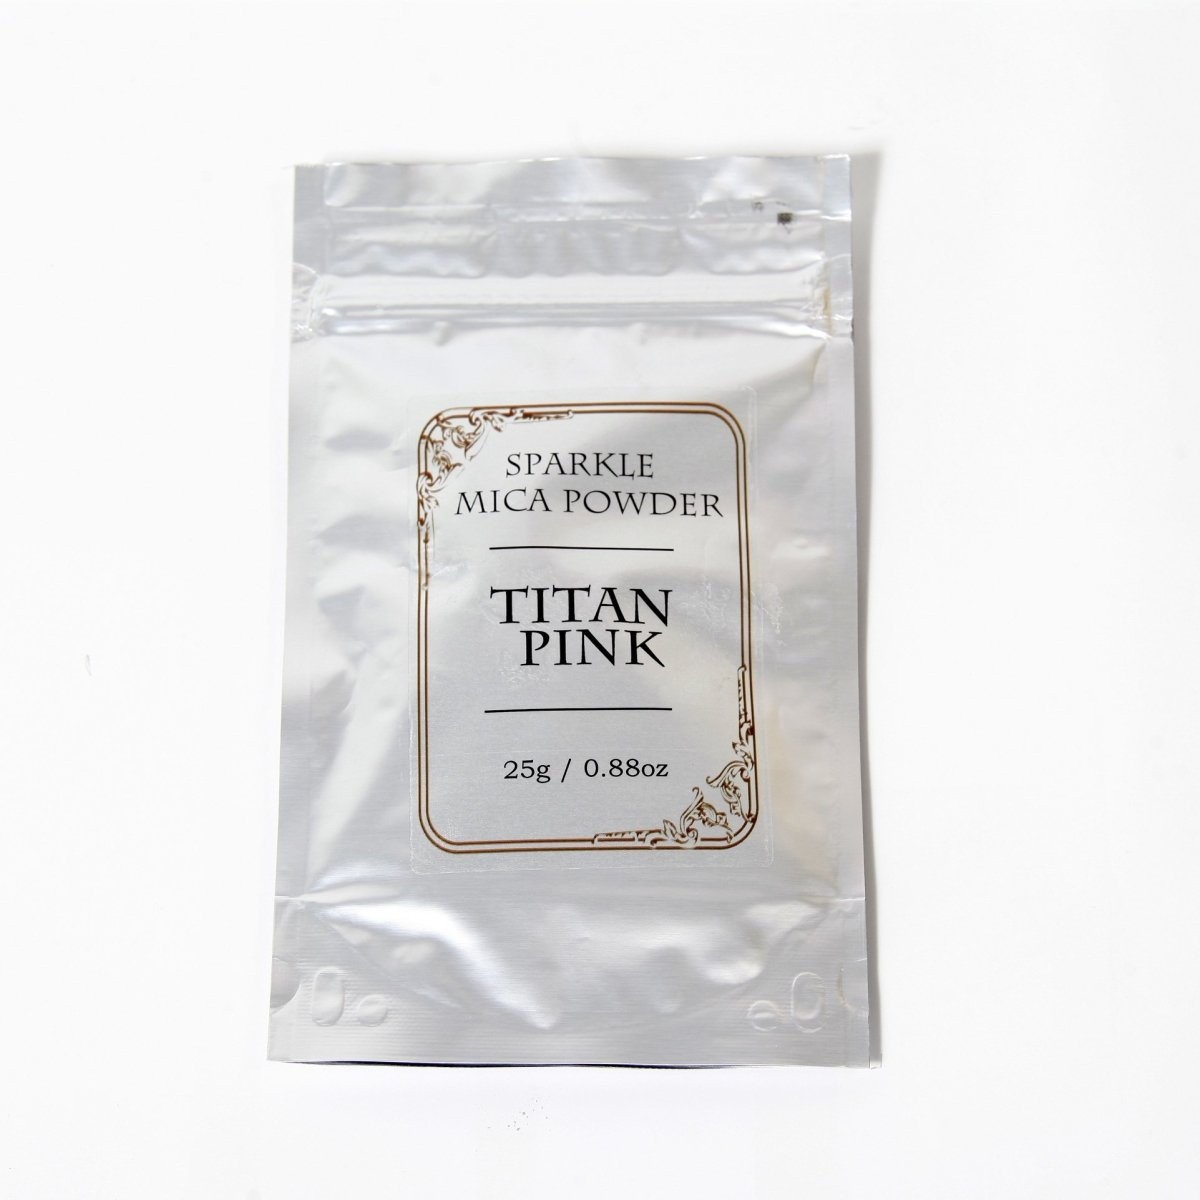 Titan Pink Sparkle Mica - Mystic Moments UK